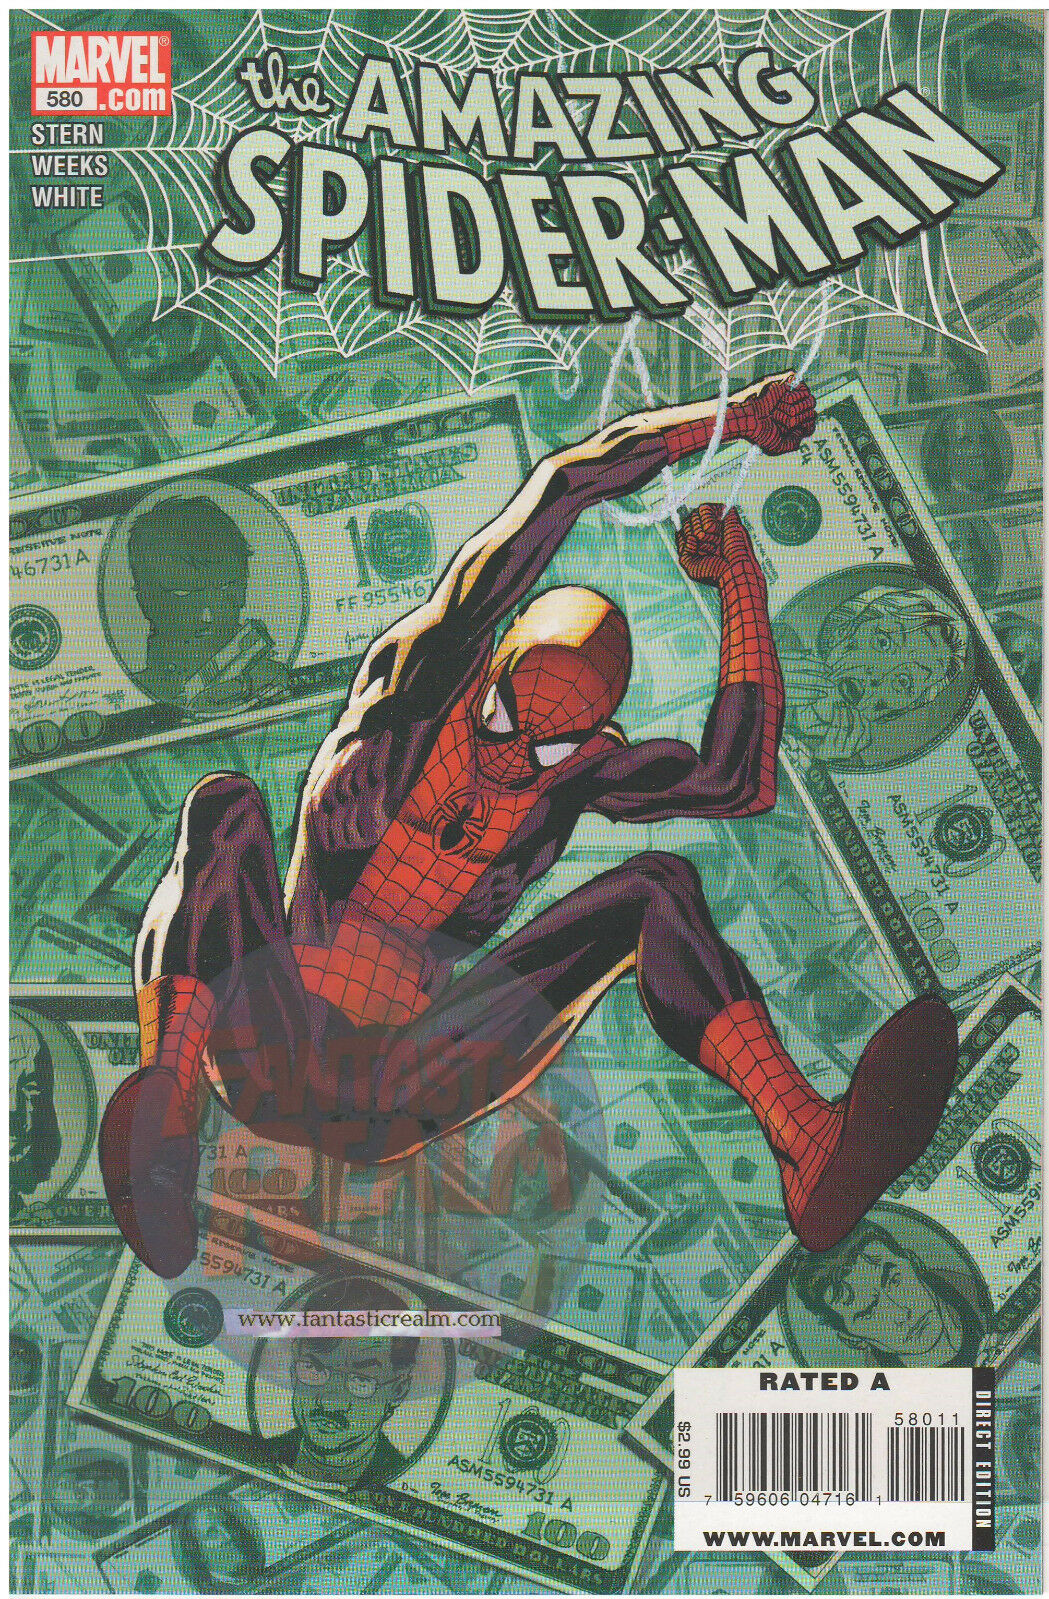 The Amazing Spider-Man #580  (2009) Marvel Comics